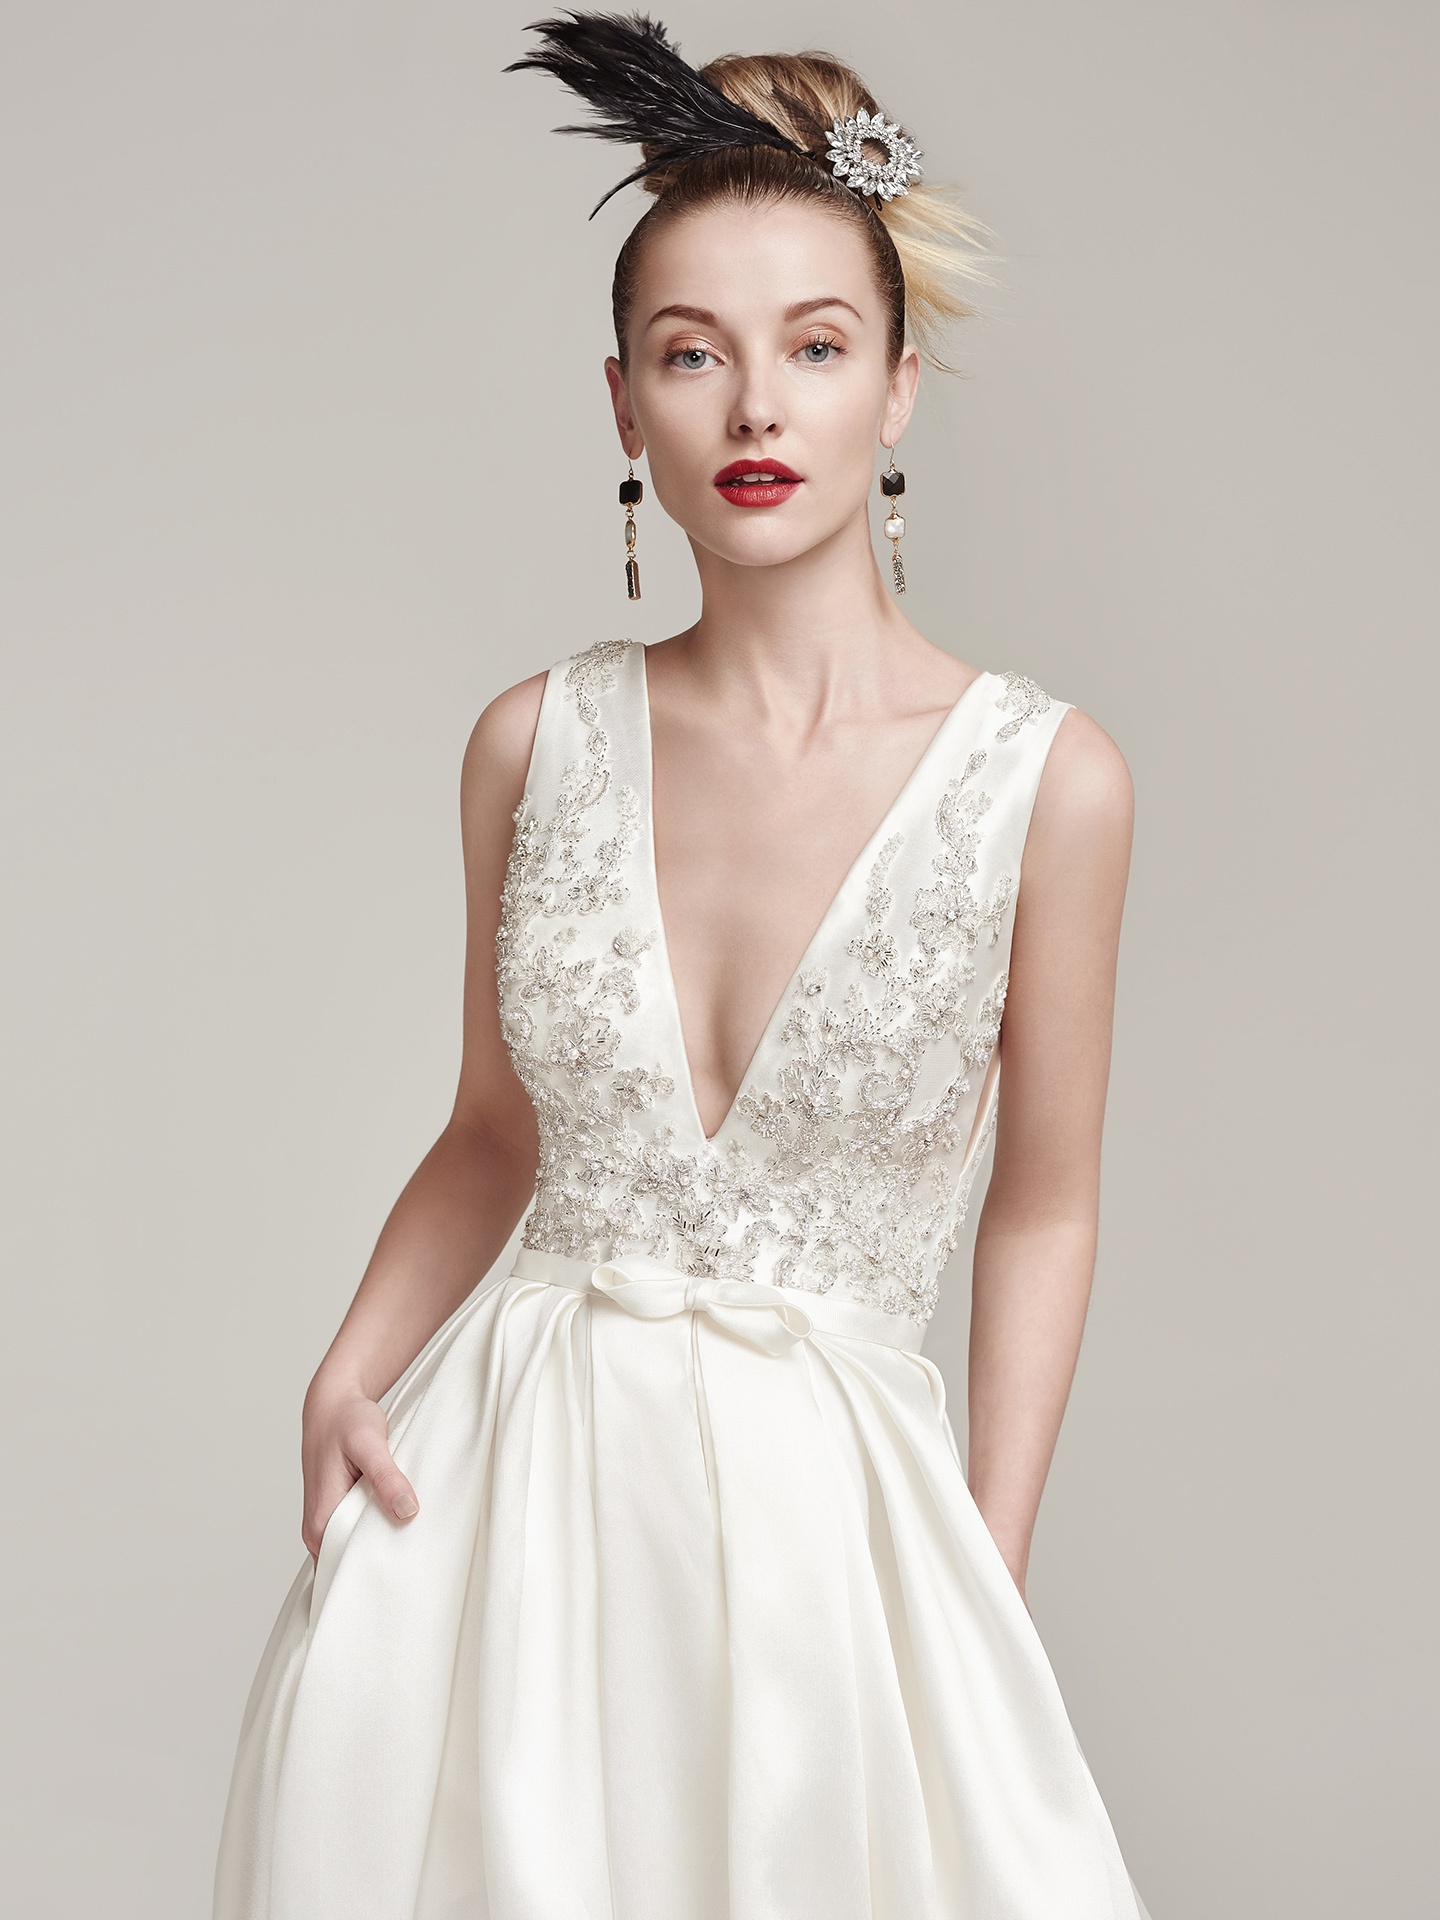 plunging v-neckline satin wedding dress - Margot by Sottero and Midgley